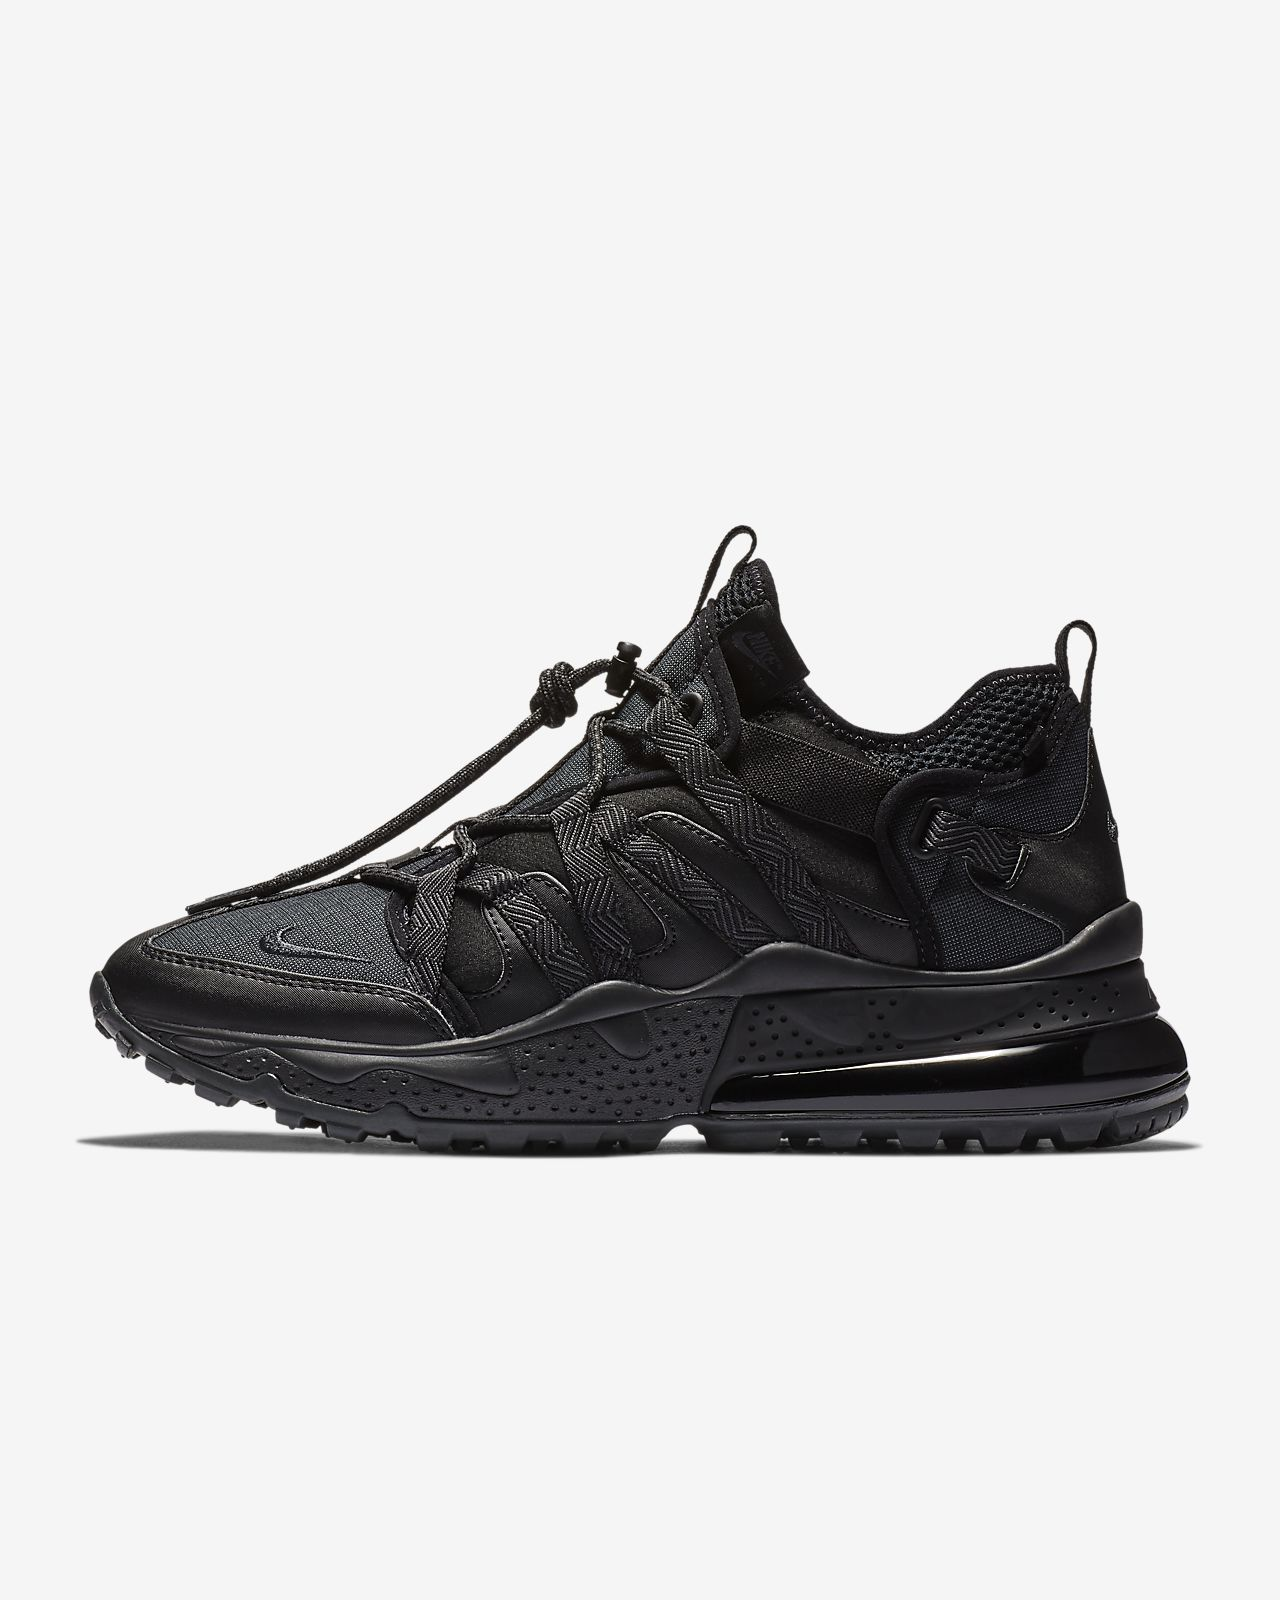 dcf535a94a Nike Air Max 270 Bowfin Men's Shoe. Nike.com